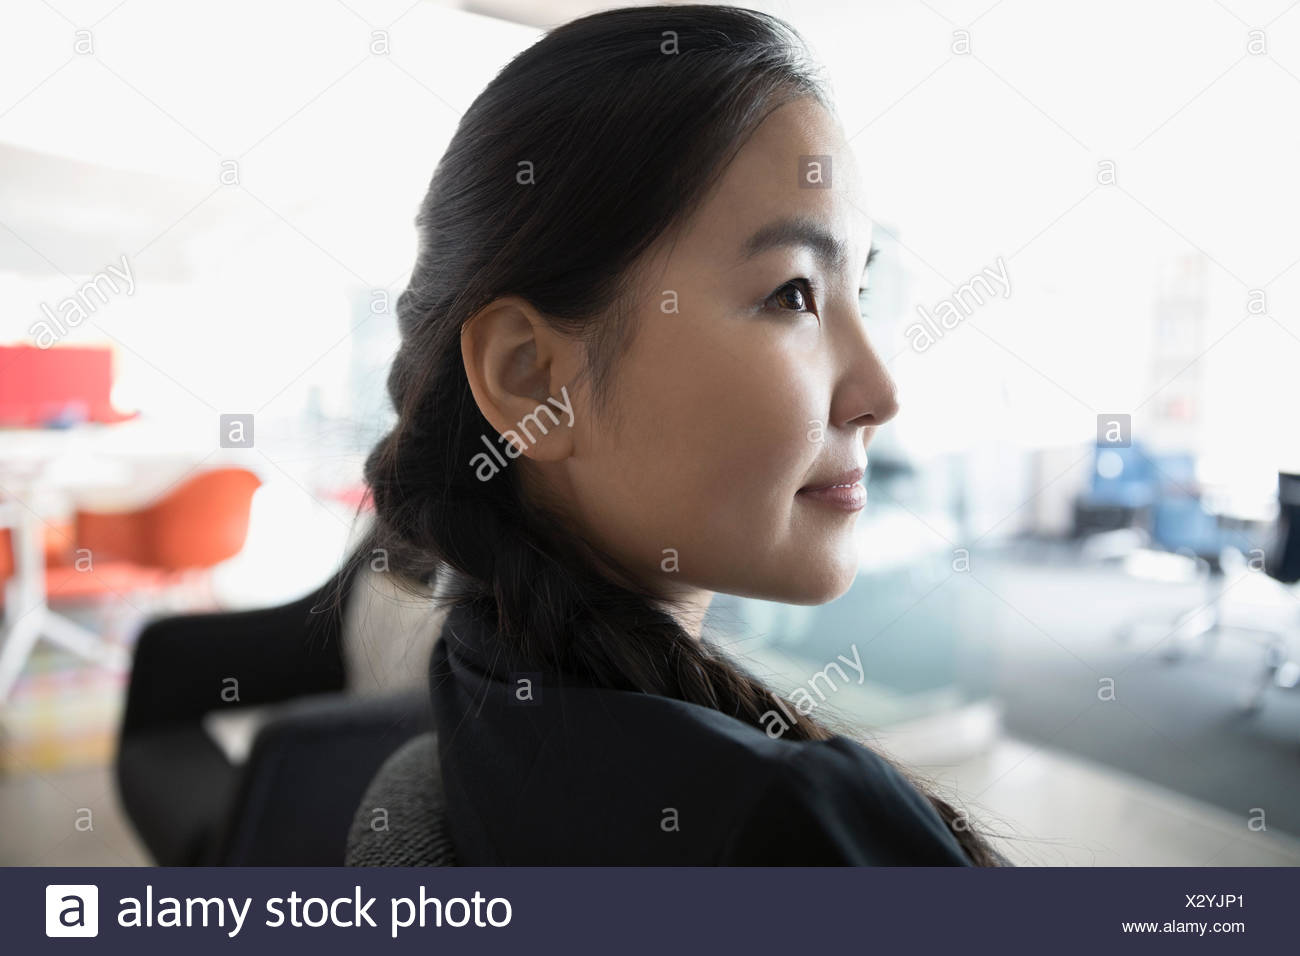 Close up profile serious, pensive businesswoman looking away Stock Photo